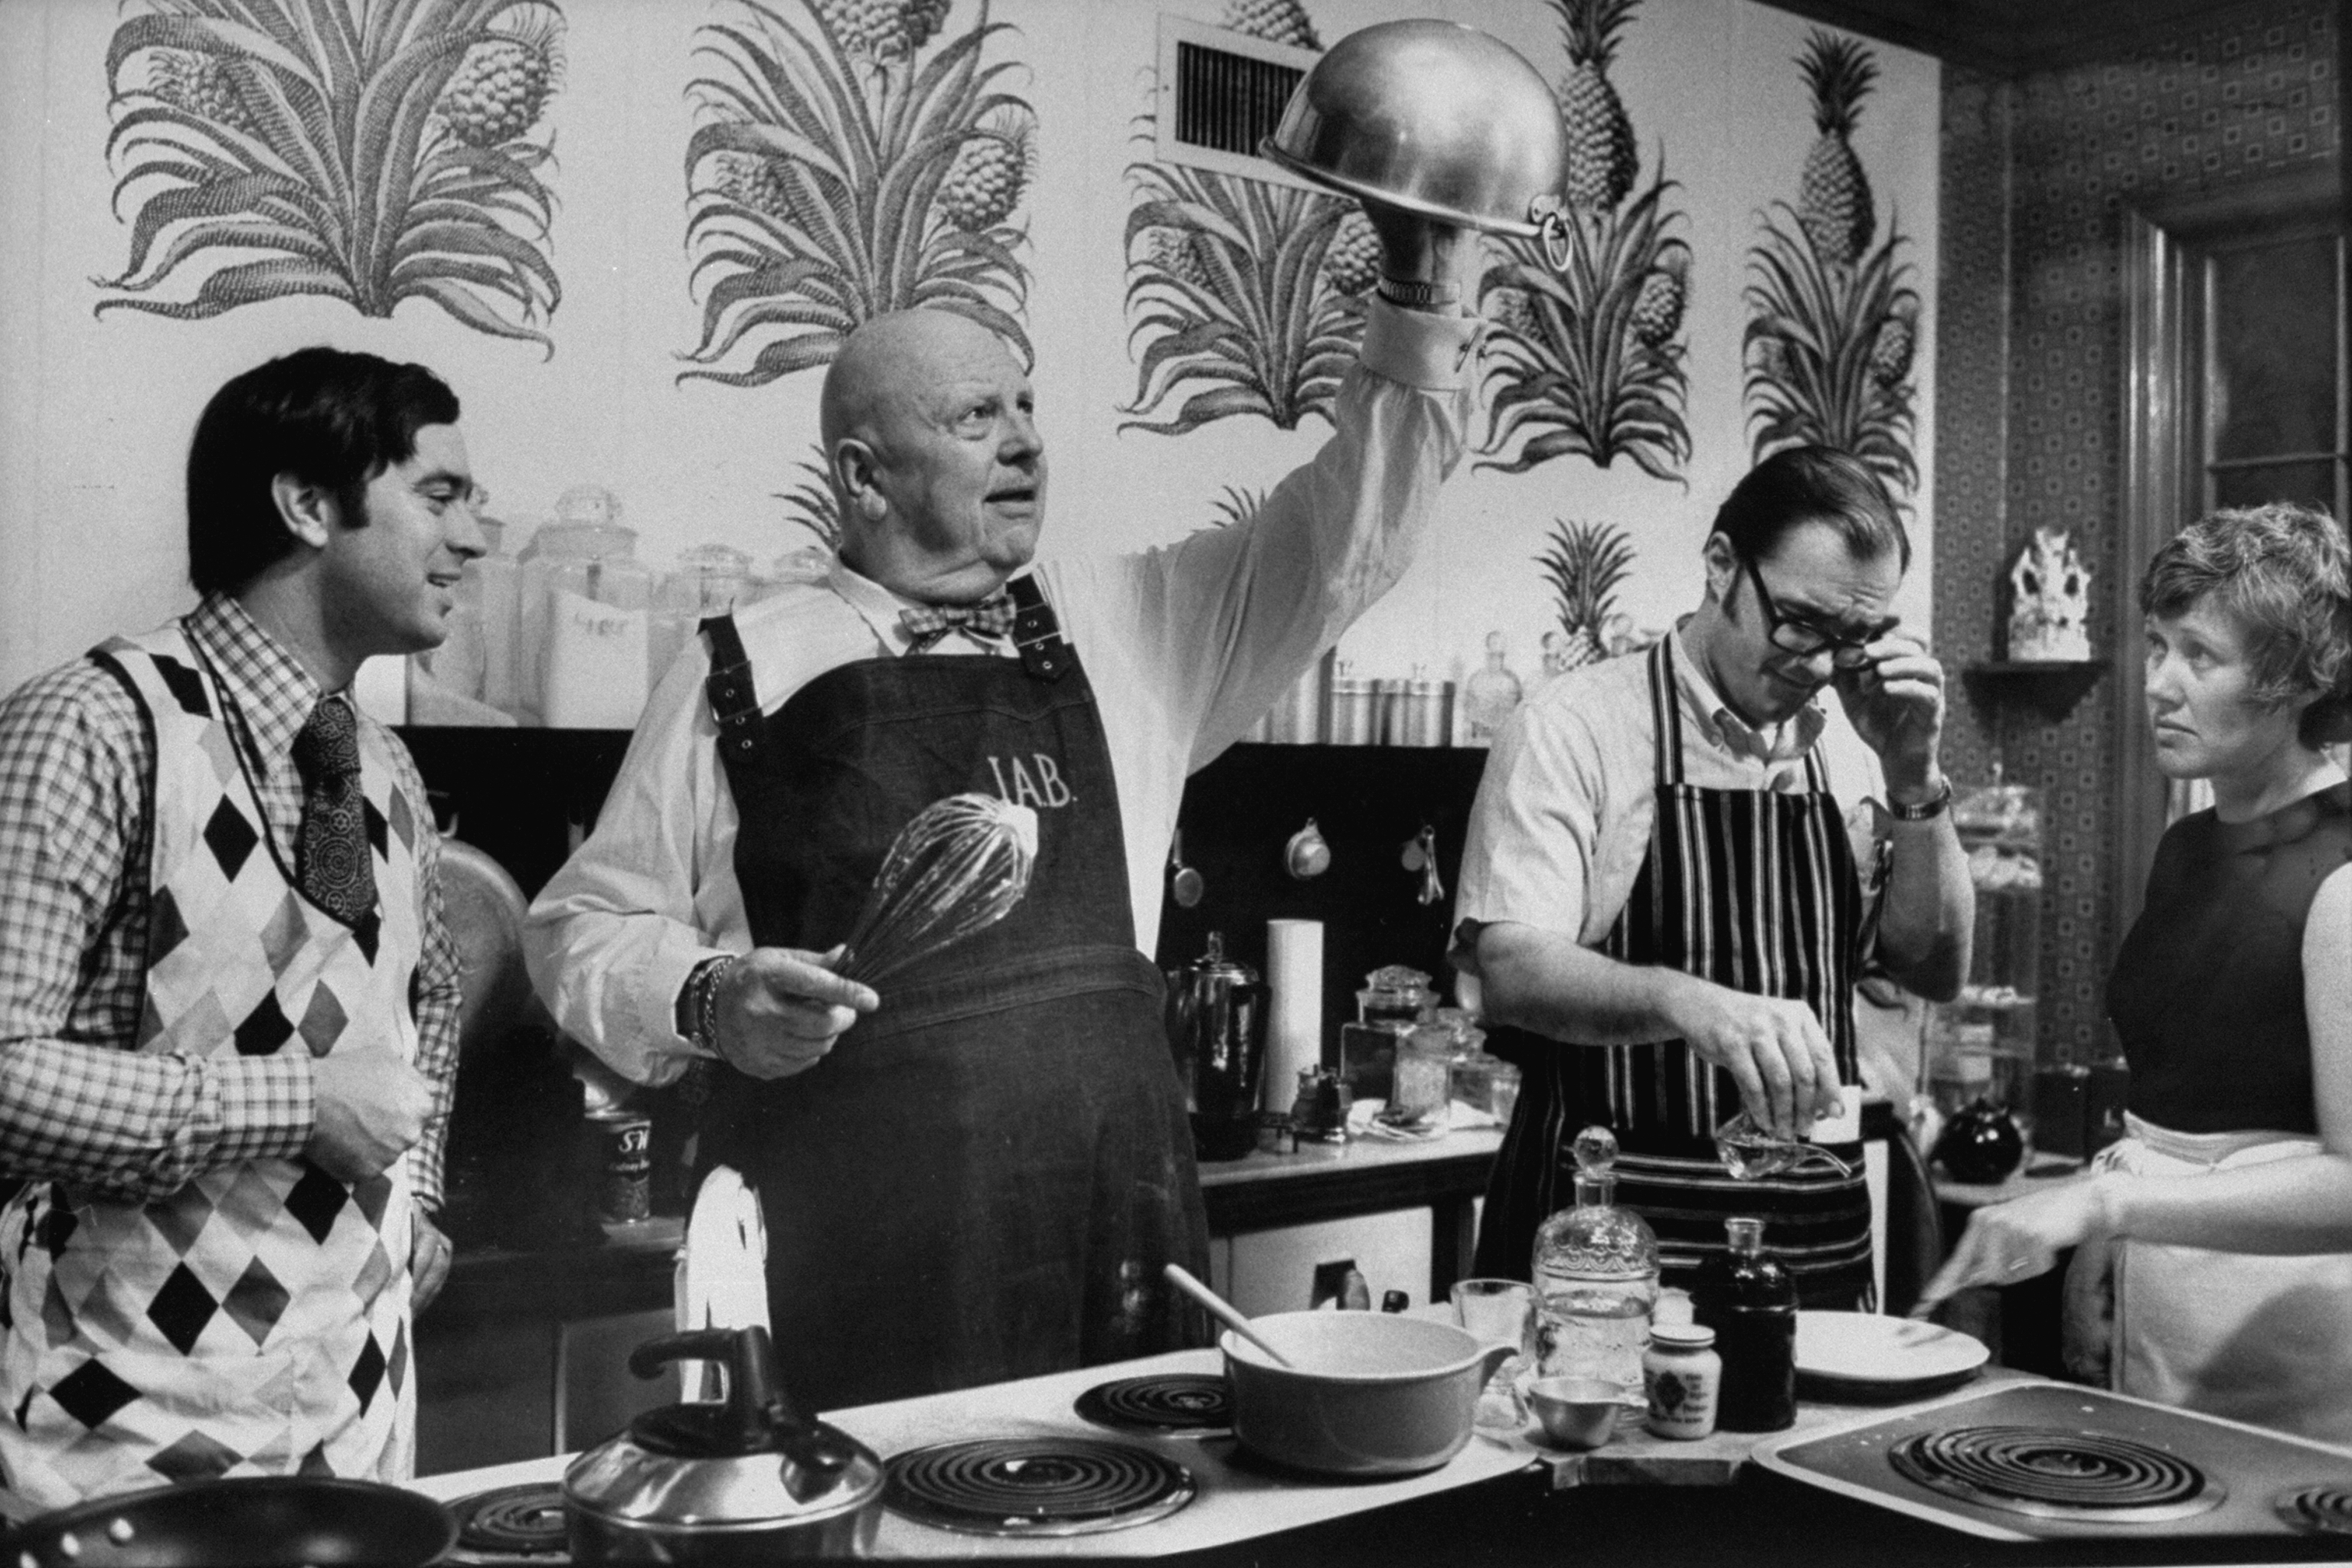 james-beard-cooking-in-kitchen-0517